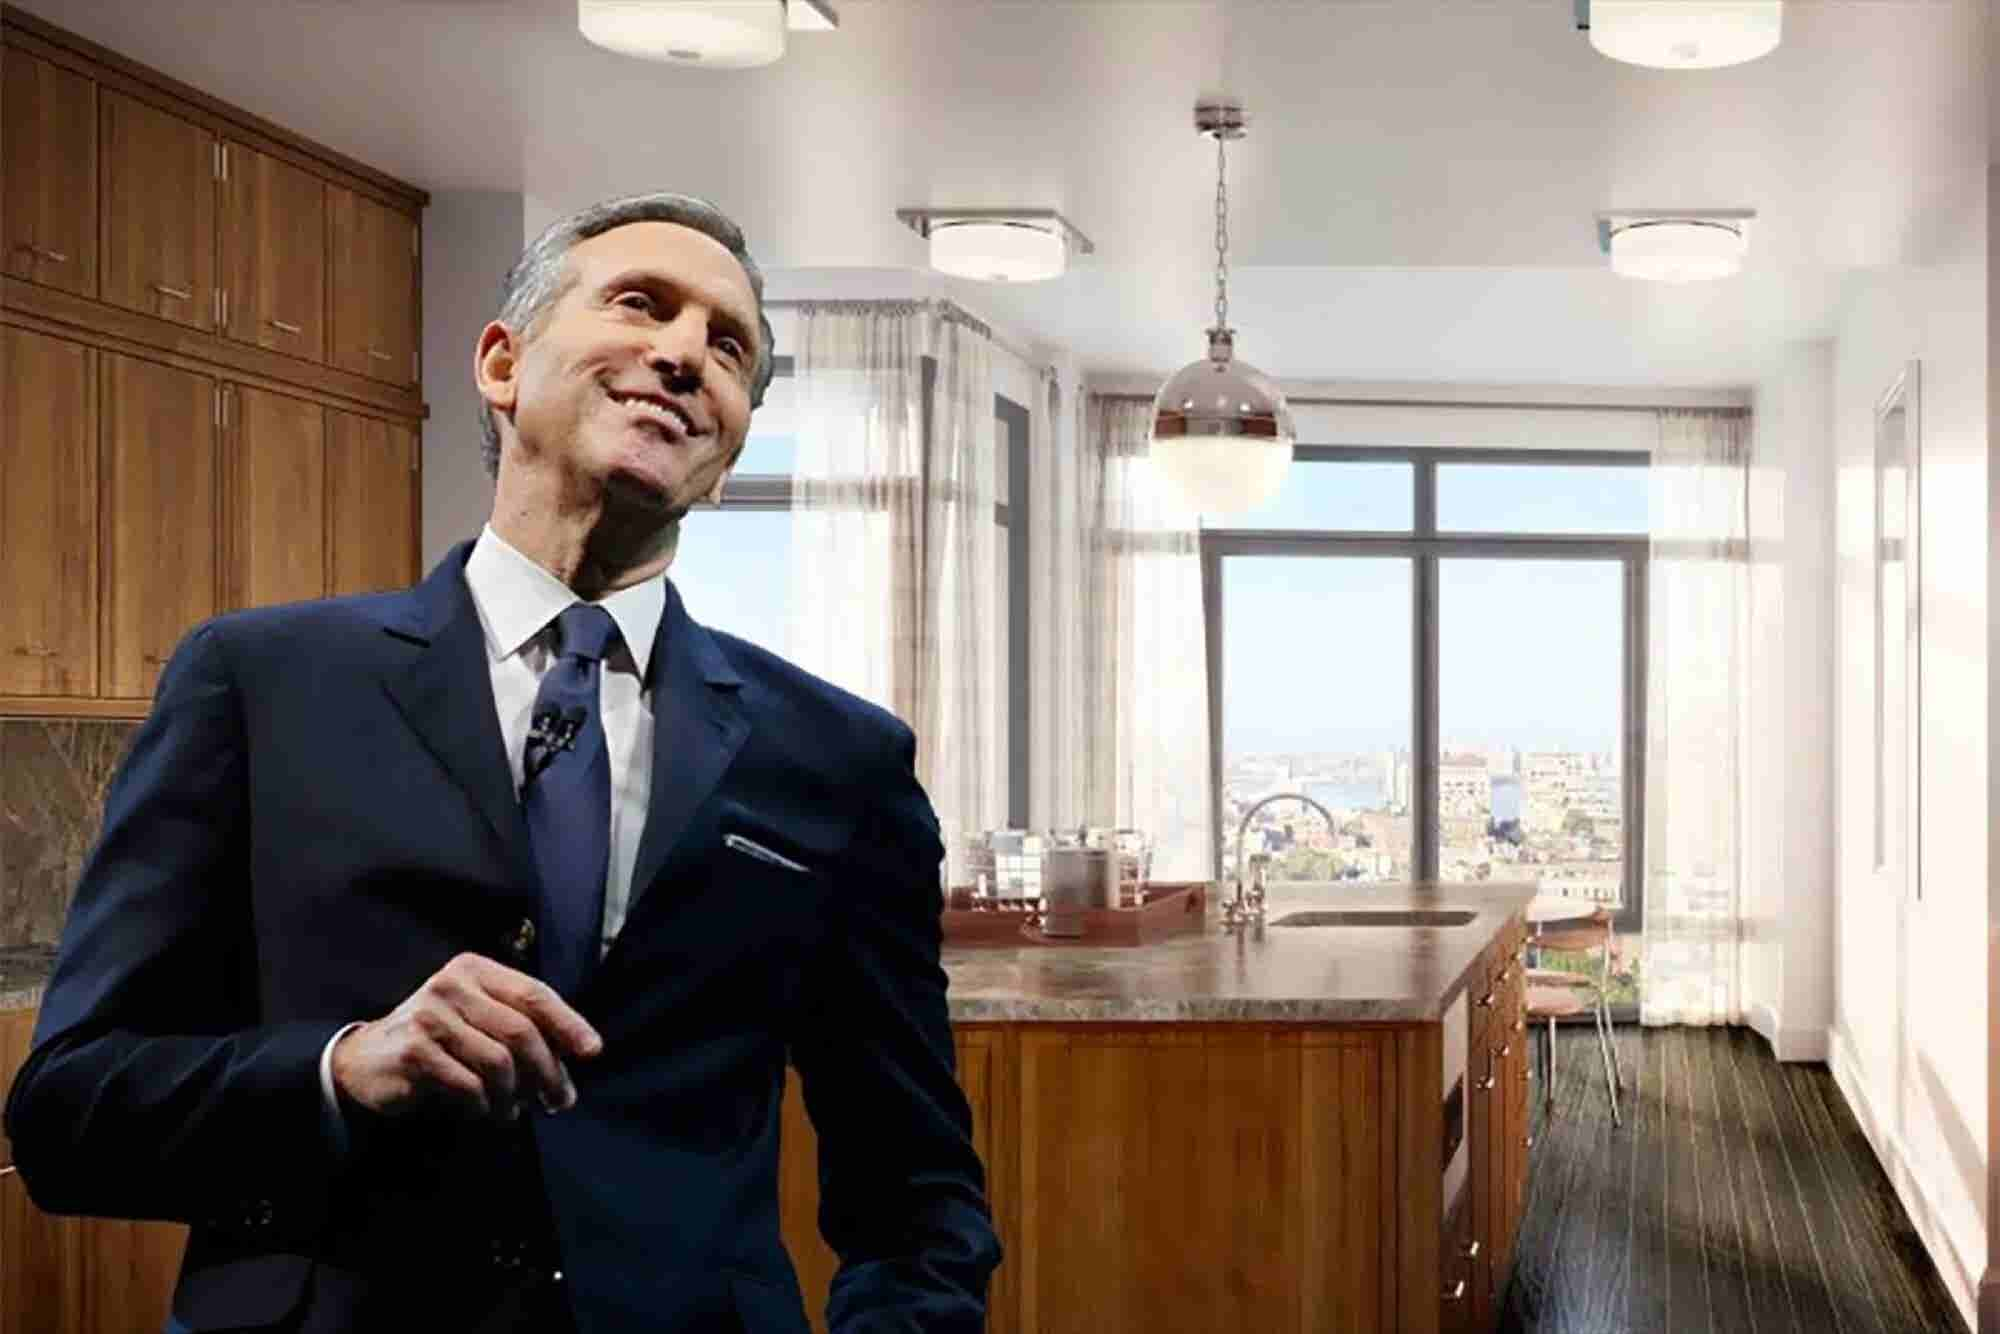 Tour The $40 Million Manhattan Penthouse Bought By Starbucks CEO Howard Schultz